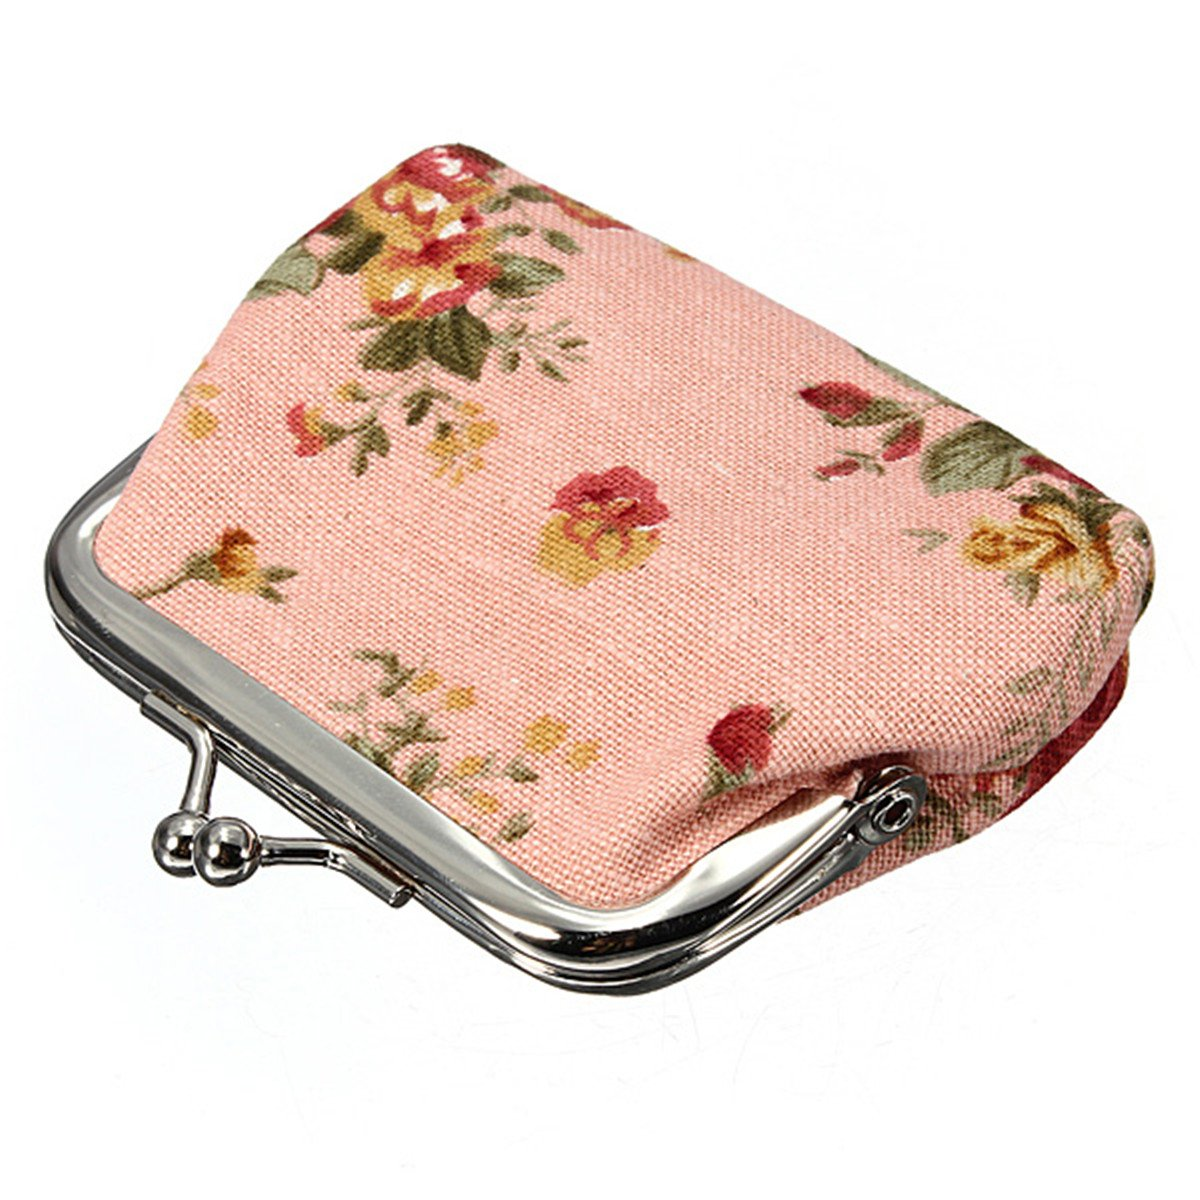 AUAU Women Roses Floral Fabric Clip Mini Small Coin Pocket Purse Bag Clutch<br><br>Aliexpress